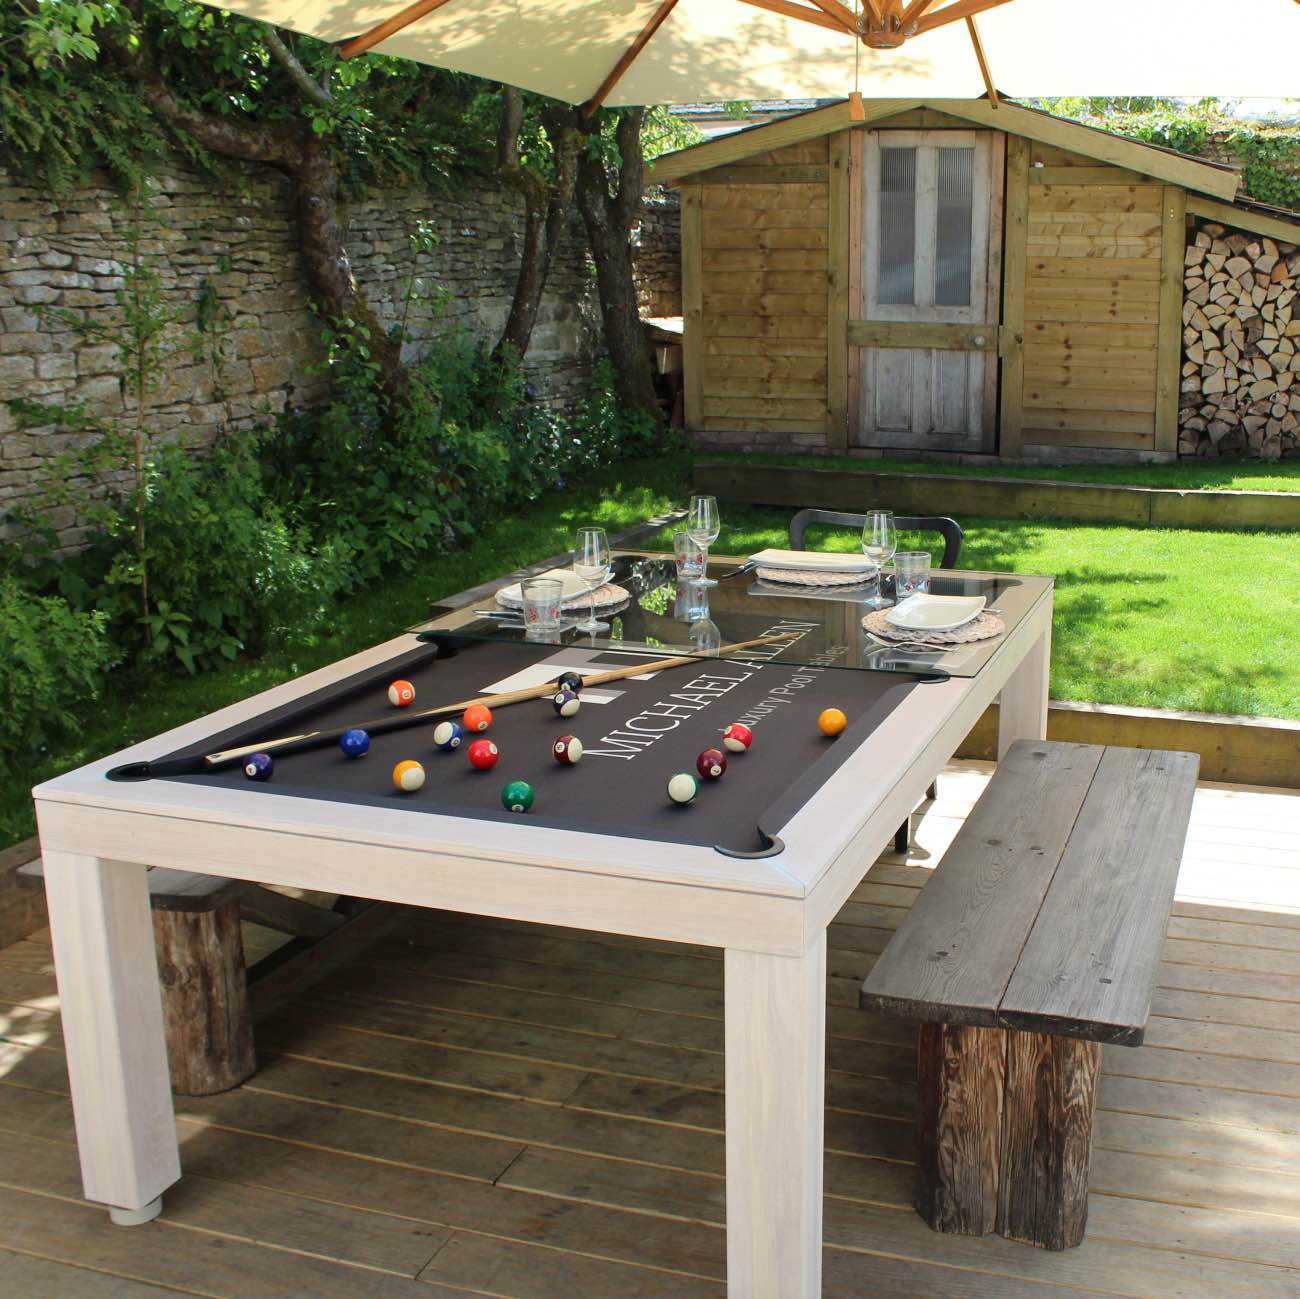 Outdoor Pool Table - Luxury Outdoor Living